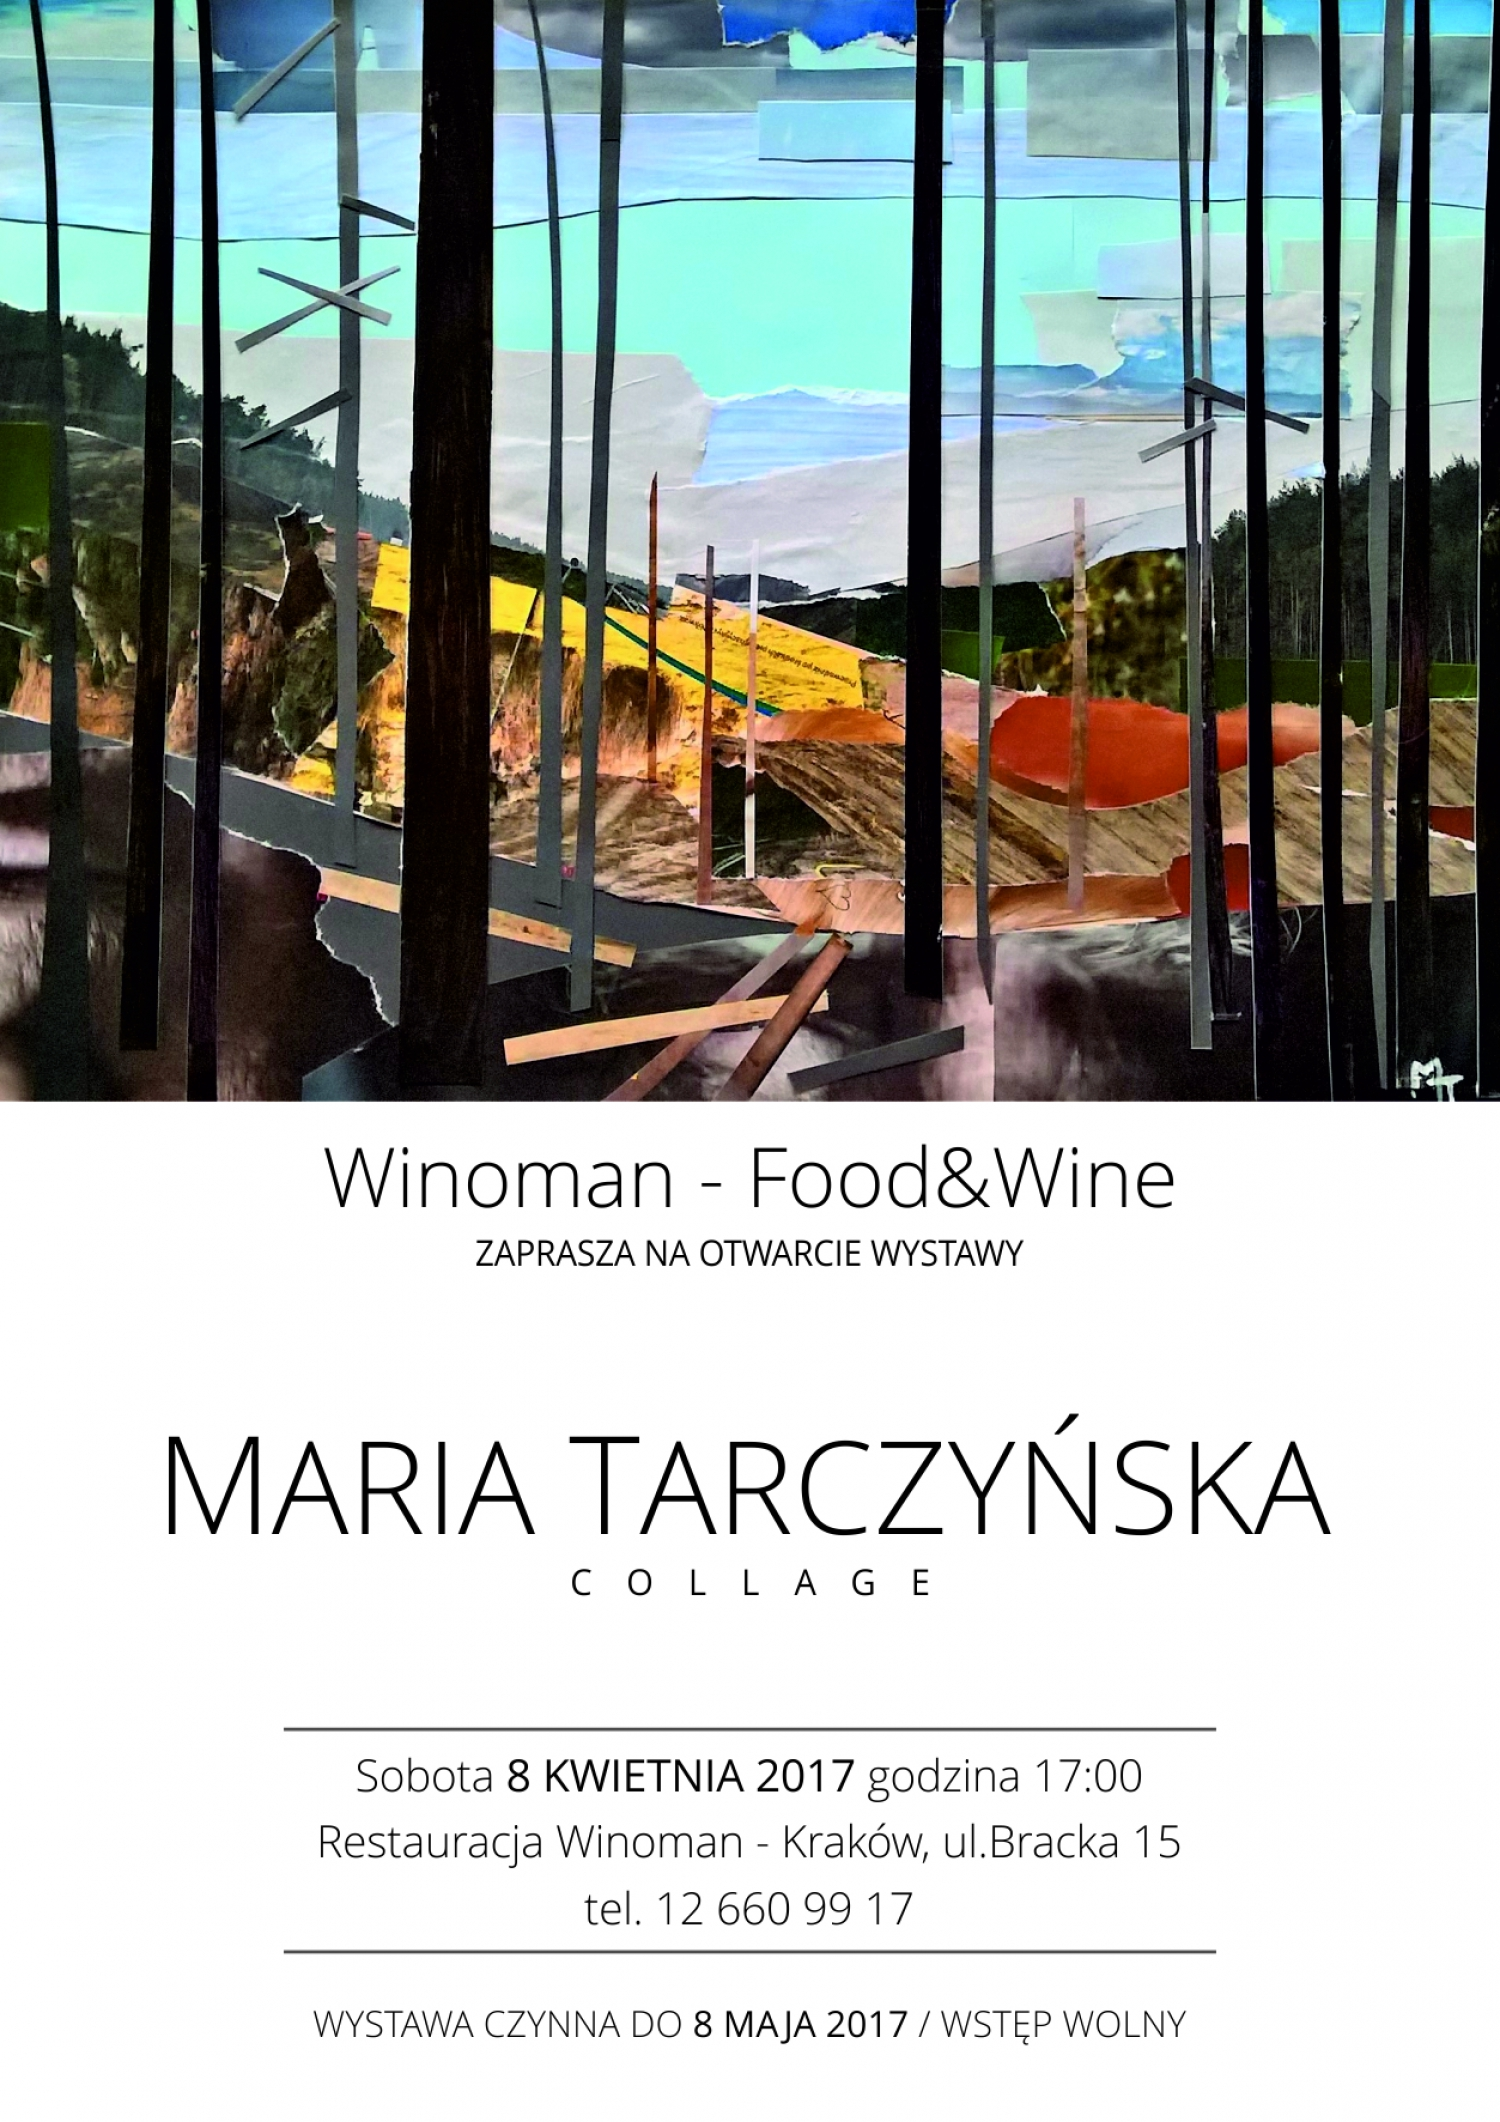 'Collage' - opening of the exhibition of Maria Tarczyńska works